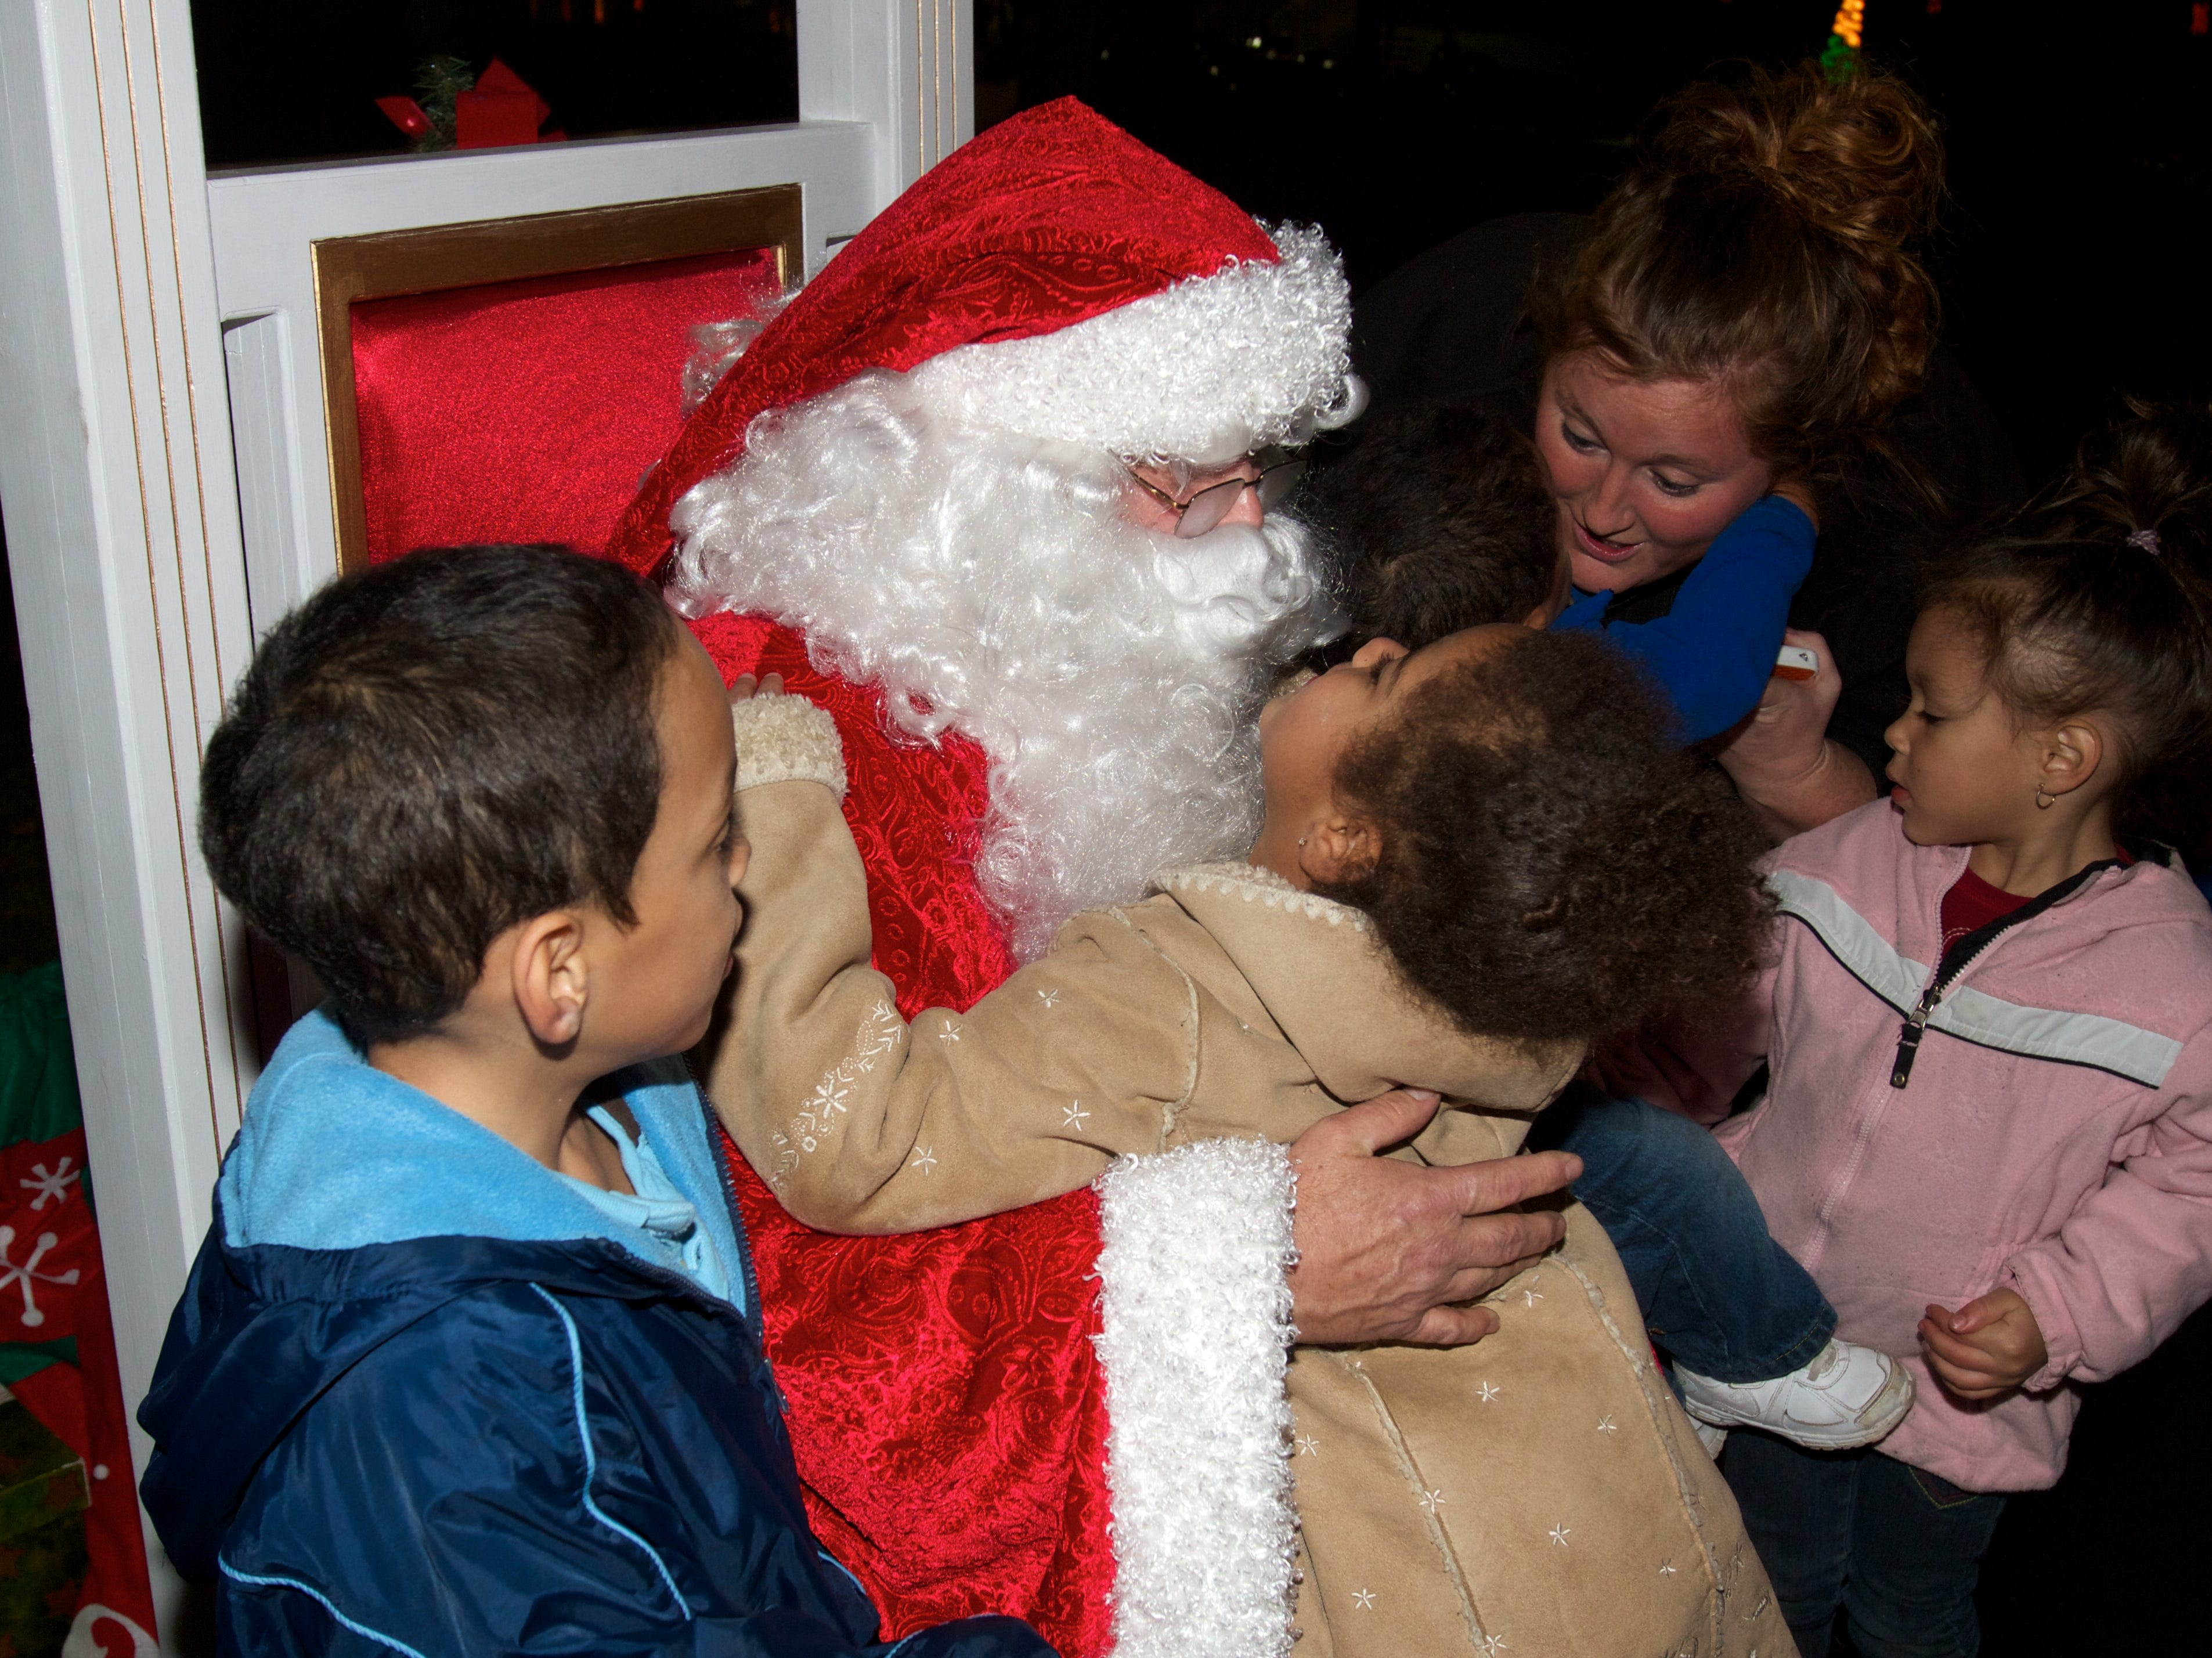 Visiting Santa are, from left, Darius Dawson, 6, Hazel Greymount, 5, Julian Cabage, 1, Tonya Cabage and Serenity Dawson, 4, on Friday, November 30, 2012 during Comcast Christmas at Chilhowee Park.